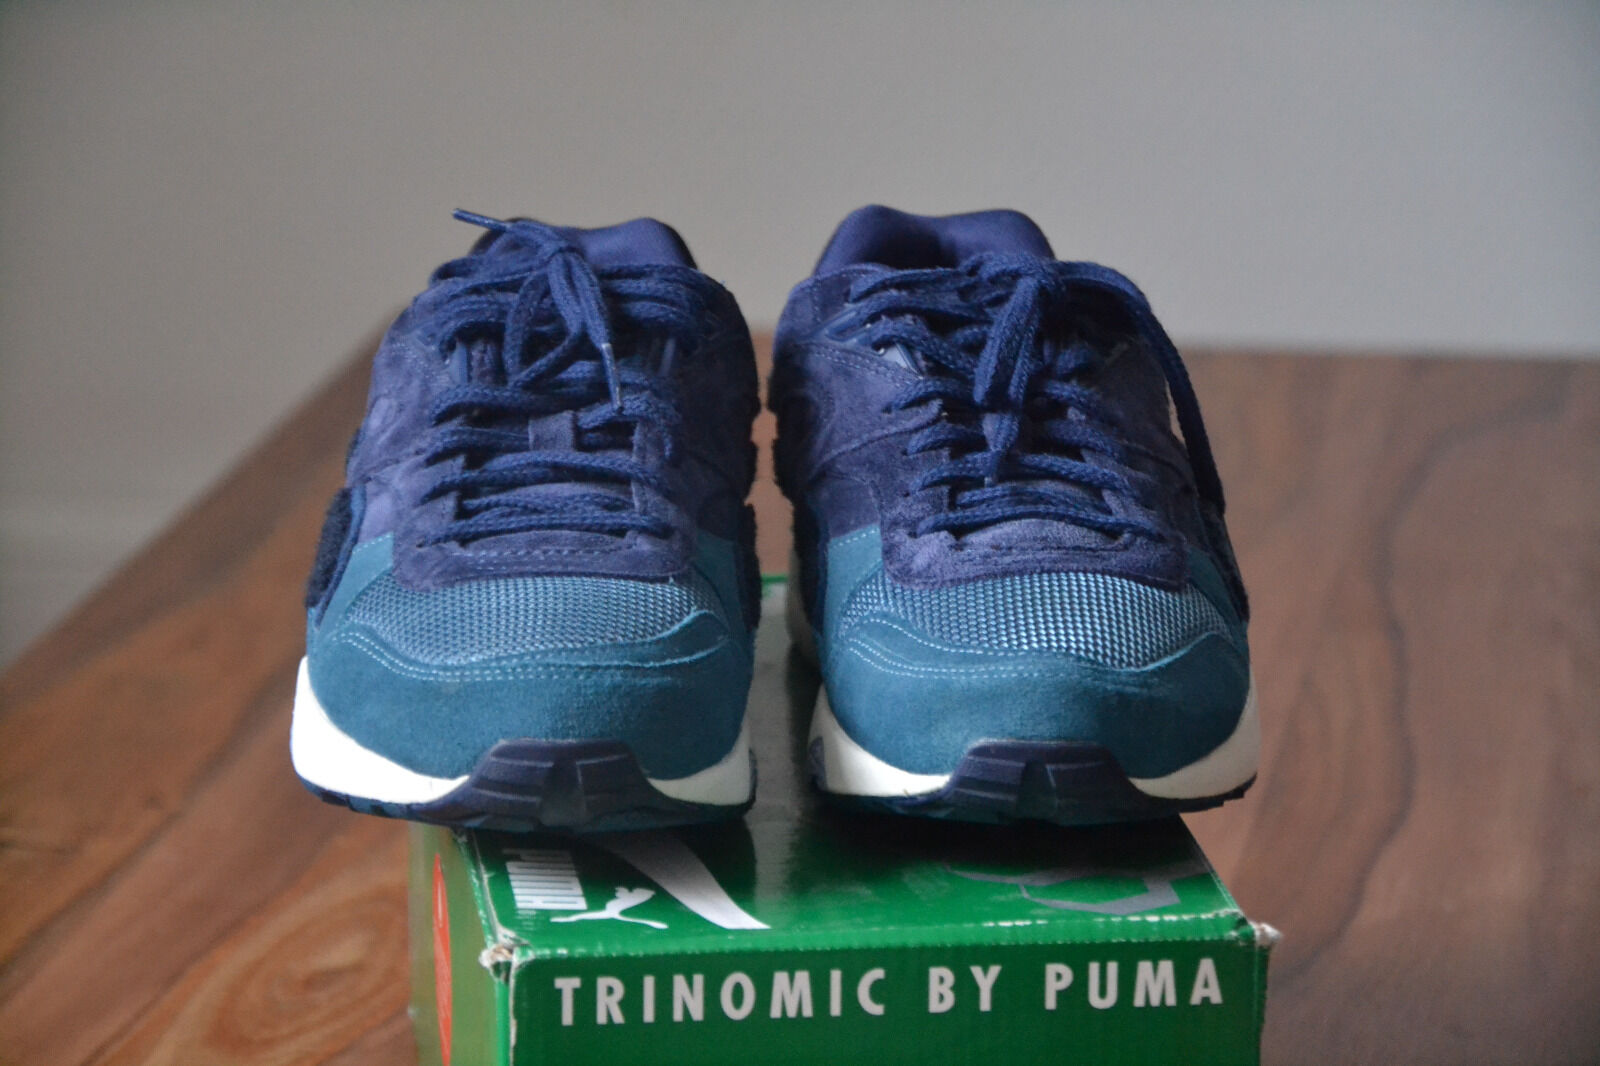 Puma BWGH R698 Blaufield  brooklyn brooklyn brooklyn we go Yeezy Solebox Max 1 Patta Fieg Supreme 03c453